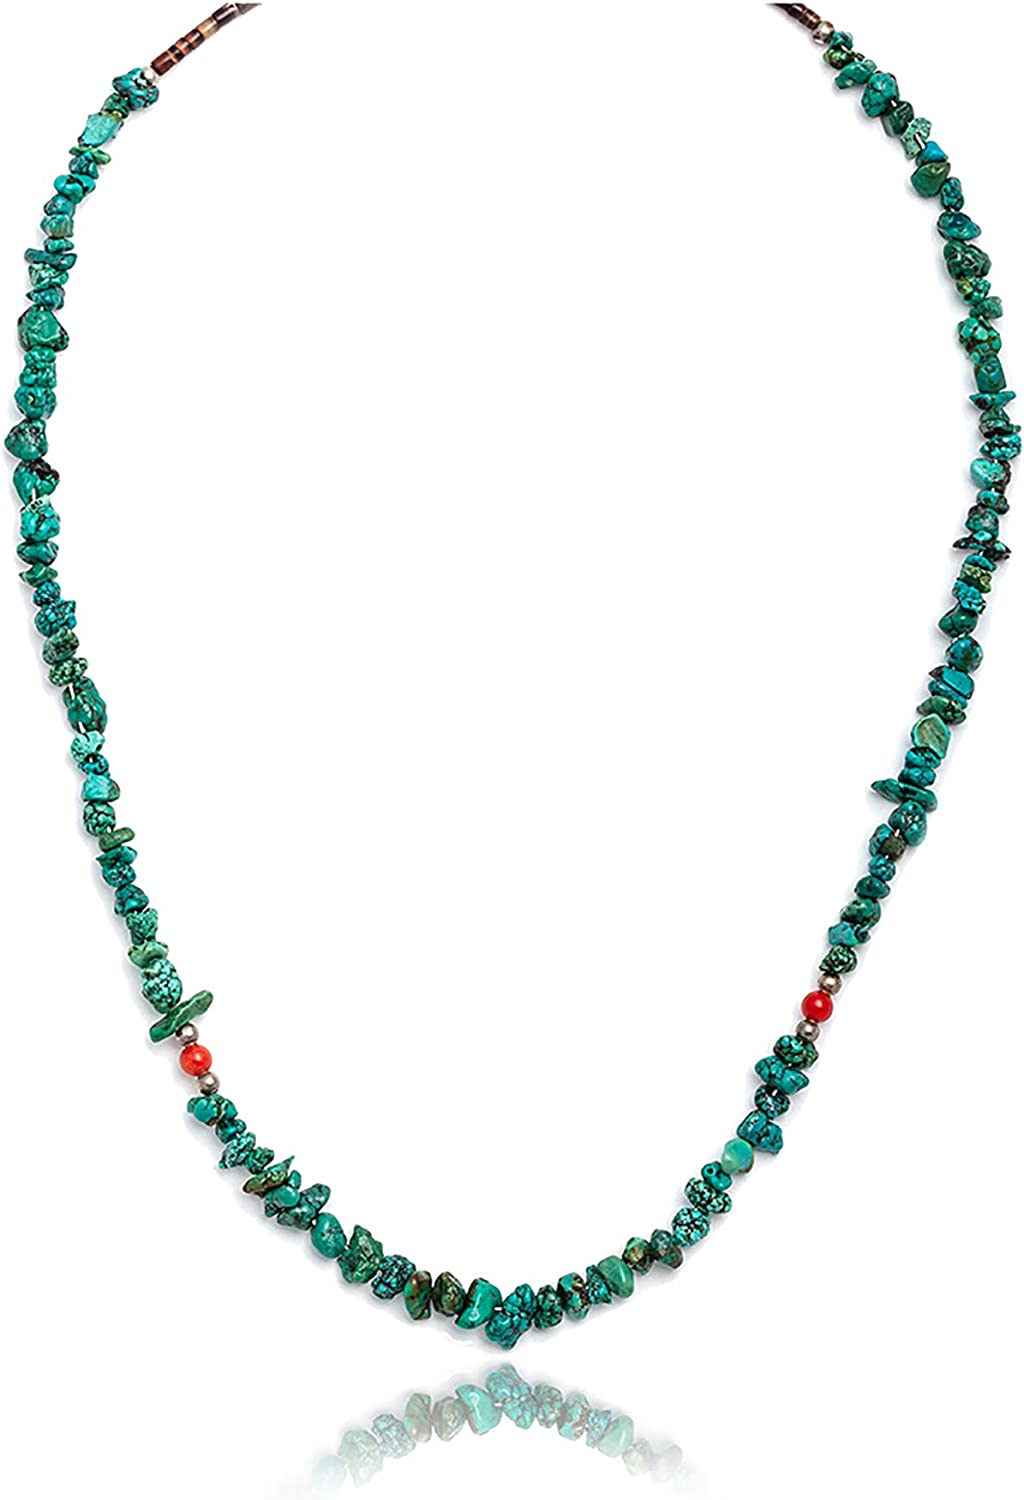 $200Tag Silver Max 43% OFF Certified Navajo Native Lowest price challenge Turquoise Nec Coral Chain